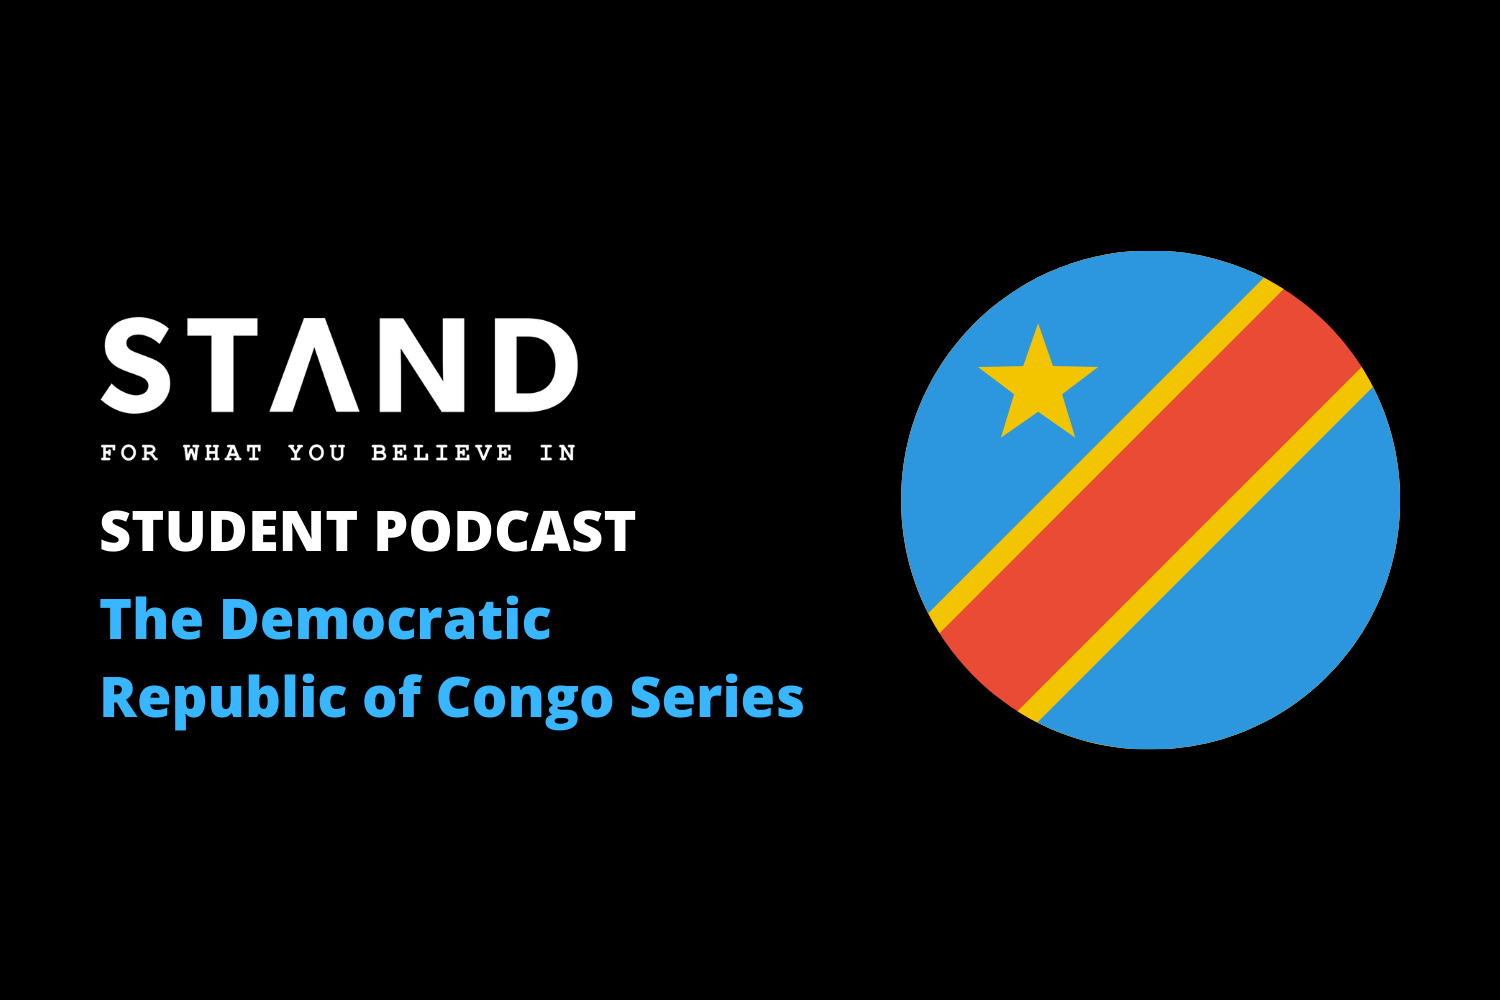 STAND Student Podcast: Democratic Republic of Congo Series Episode 5